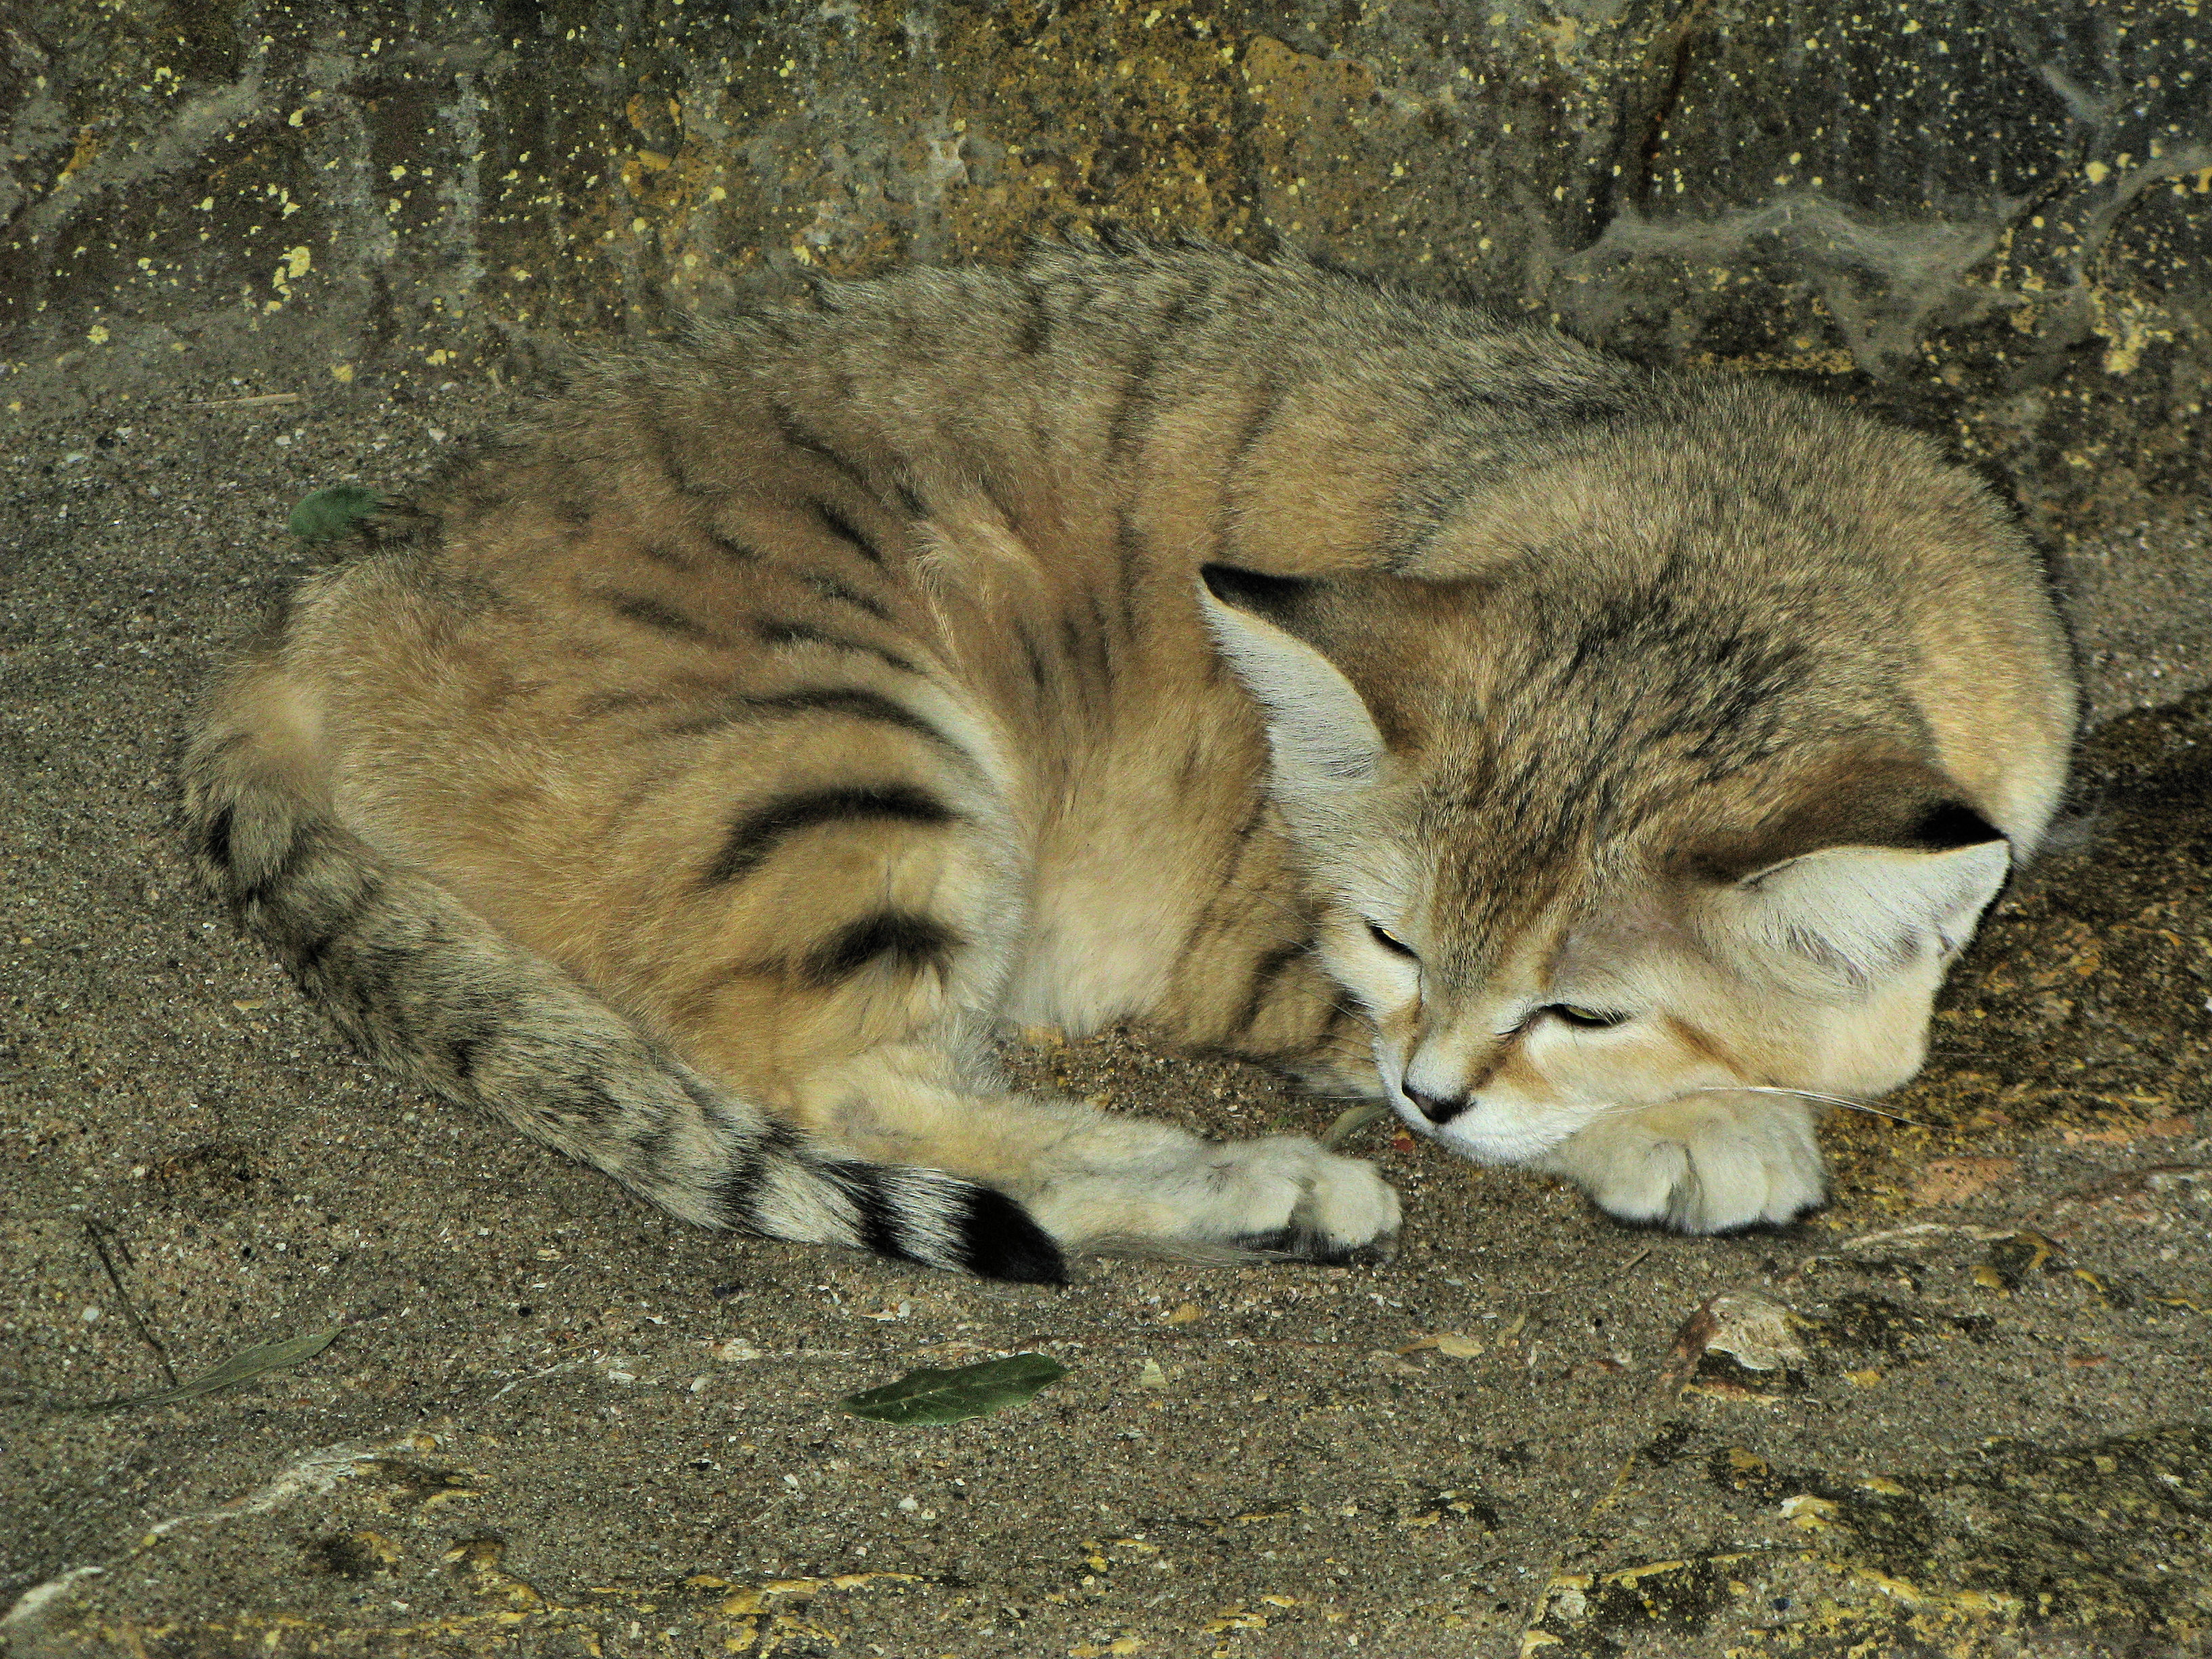 File:Sand cat at bristol zoo arp.jpg - Wikimedia Commons